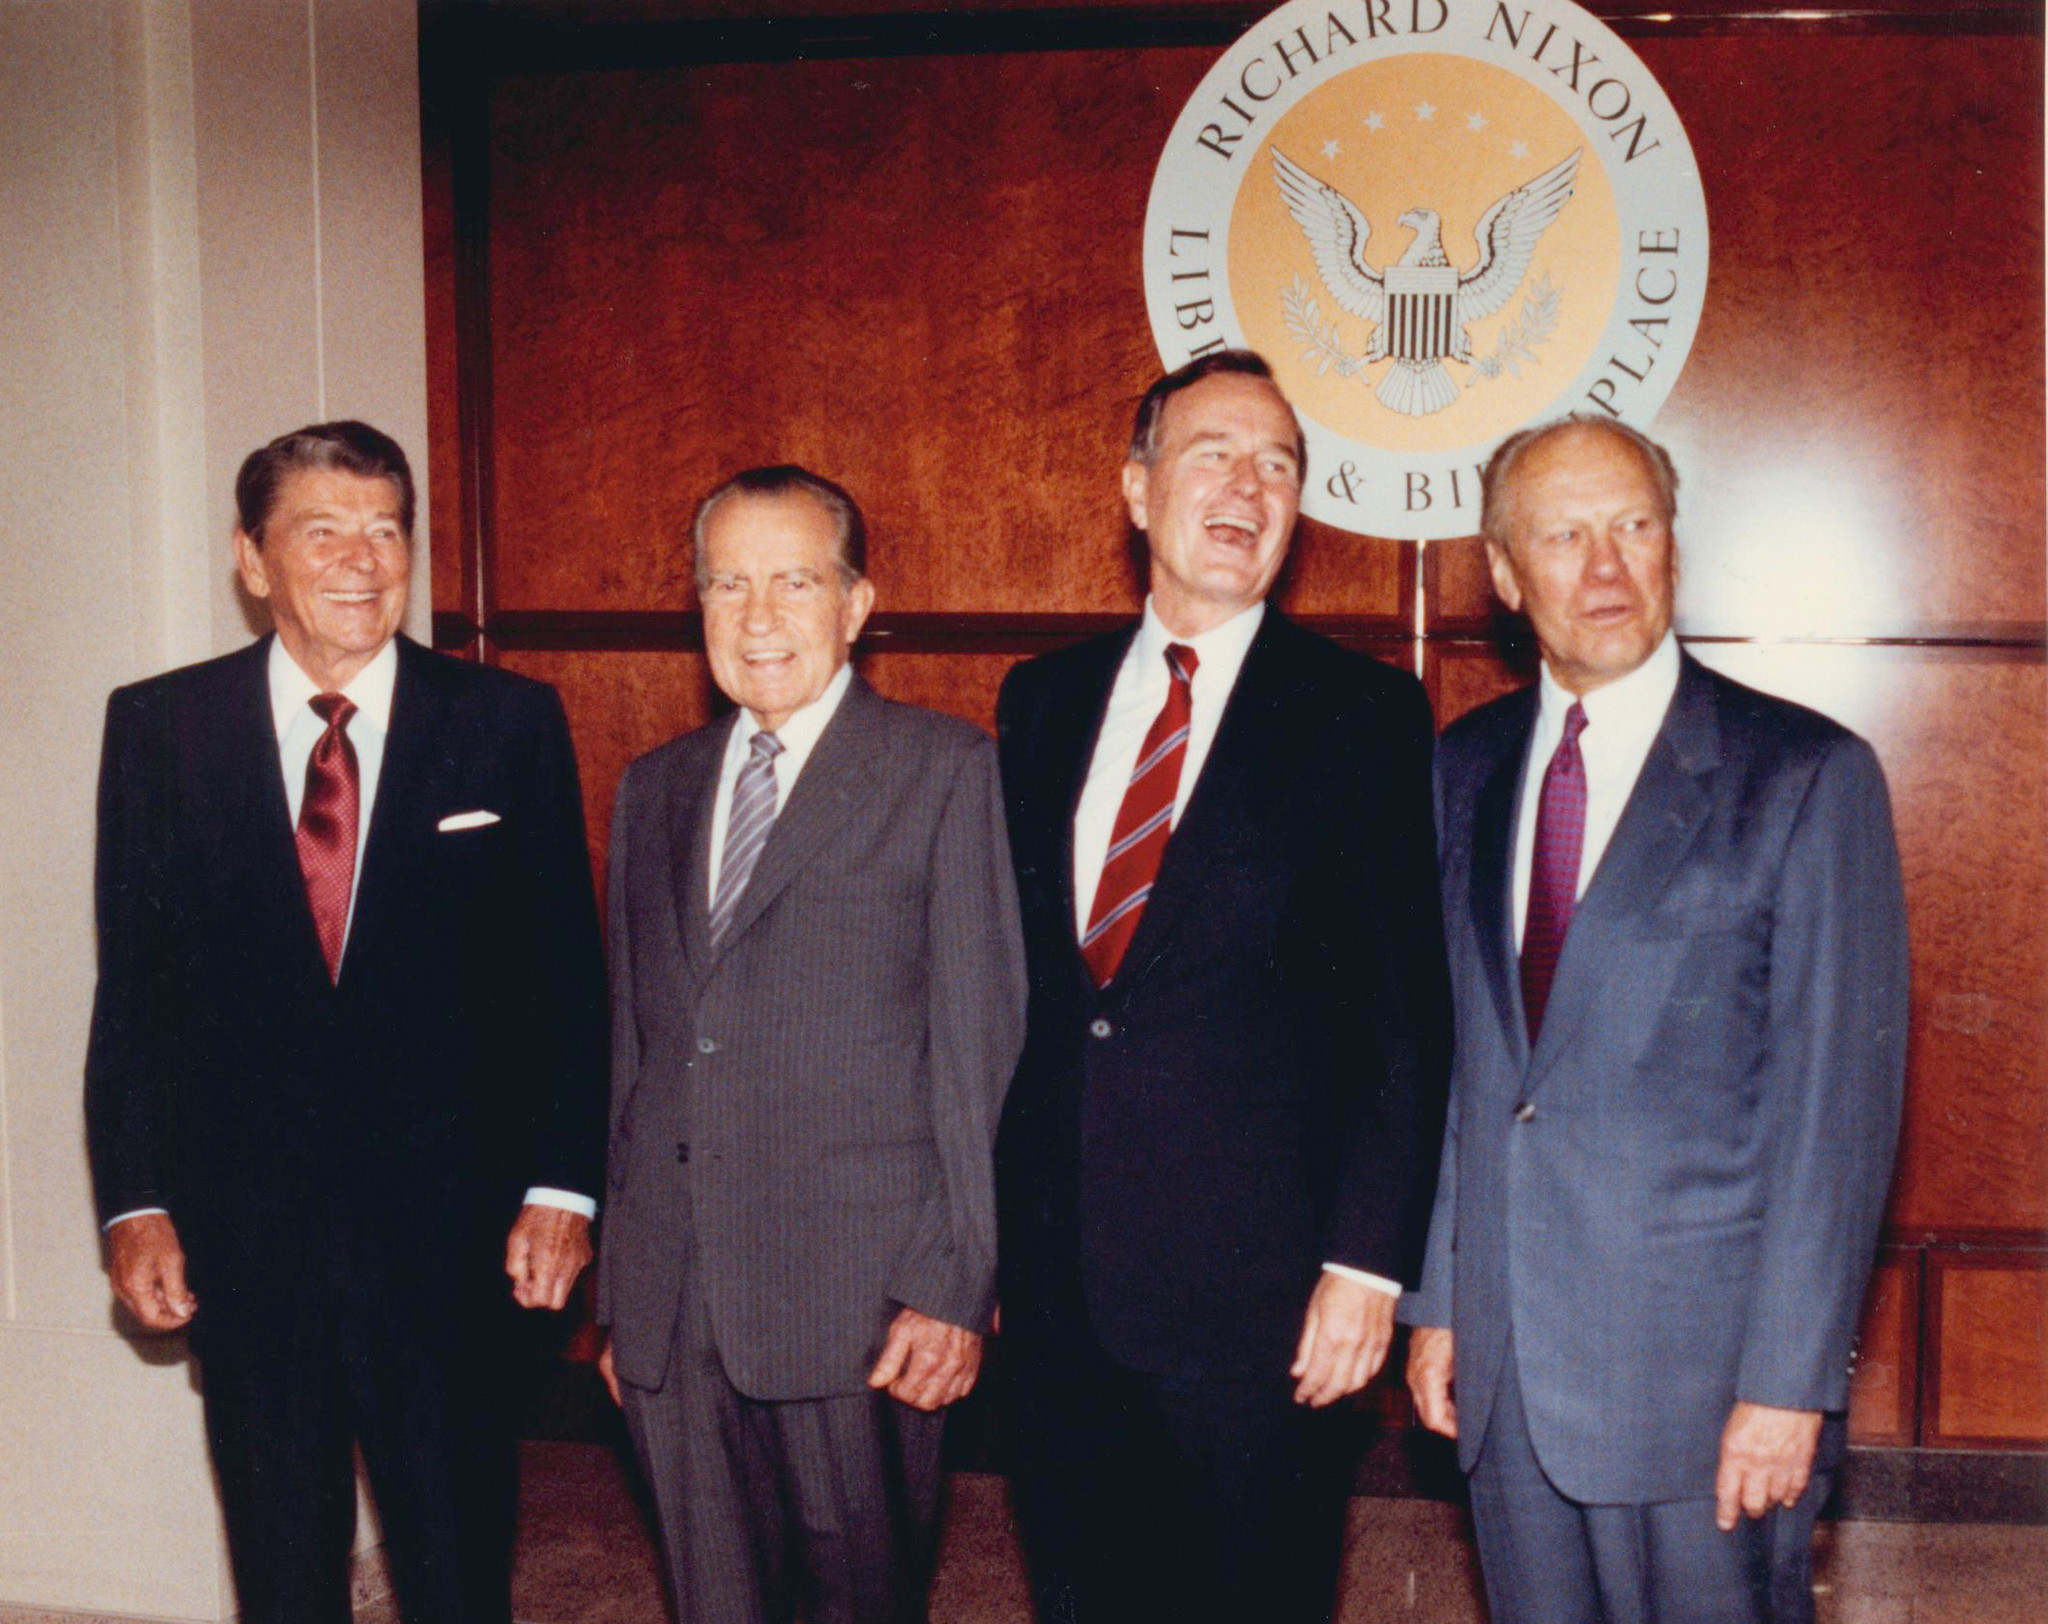 From left: Former presidents Ronald Reagan, Richard Nixon, George Bush and Gerald Ford